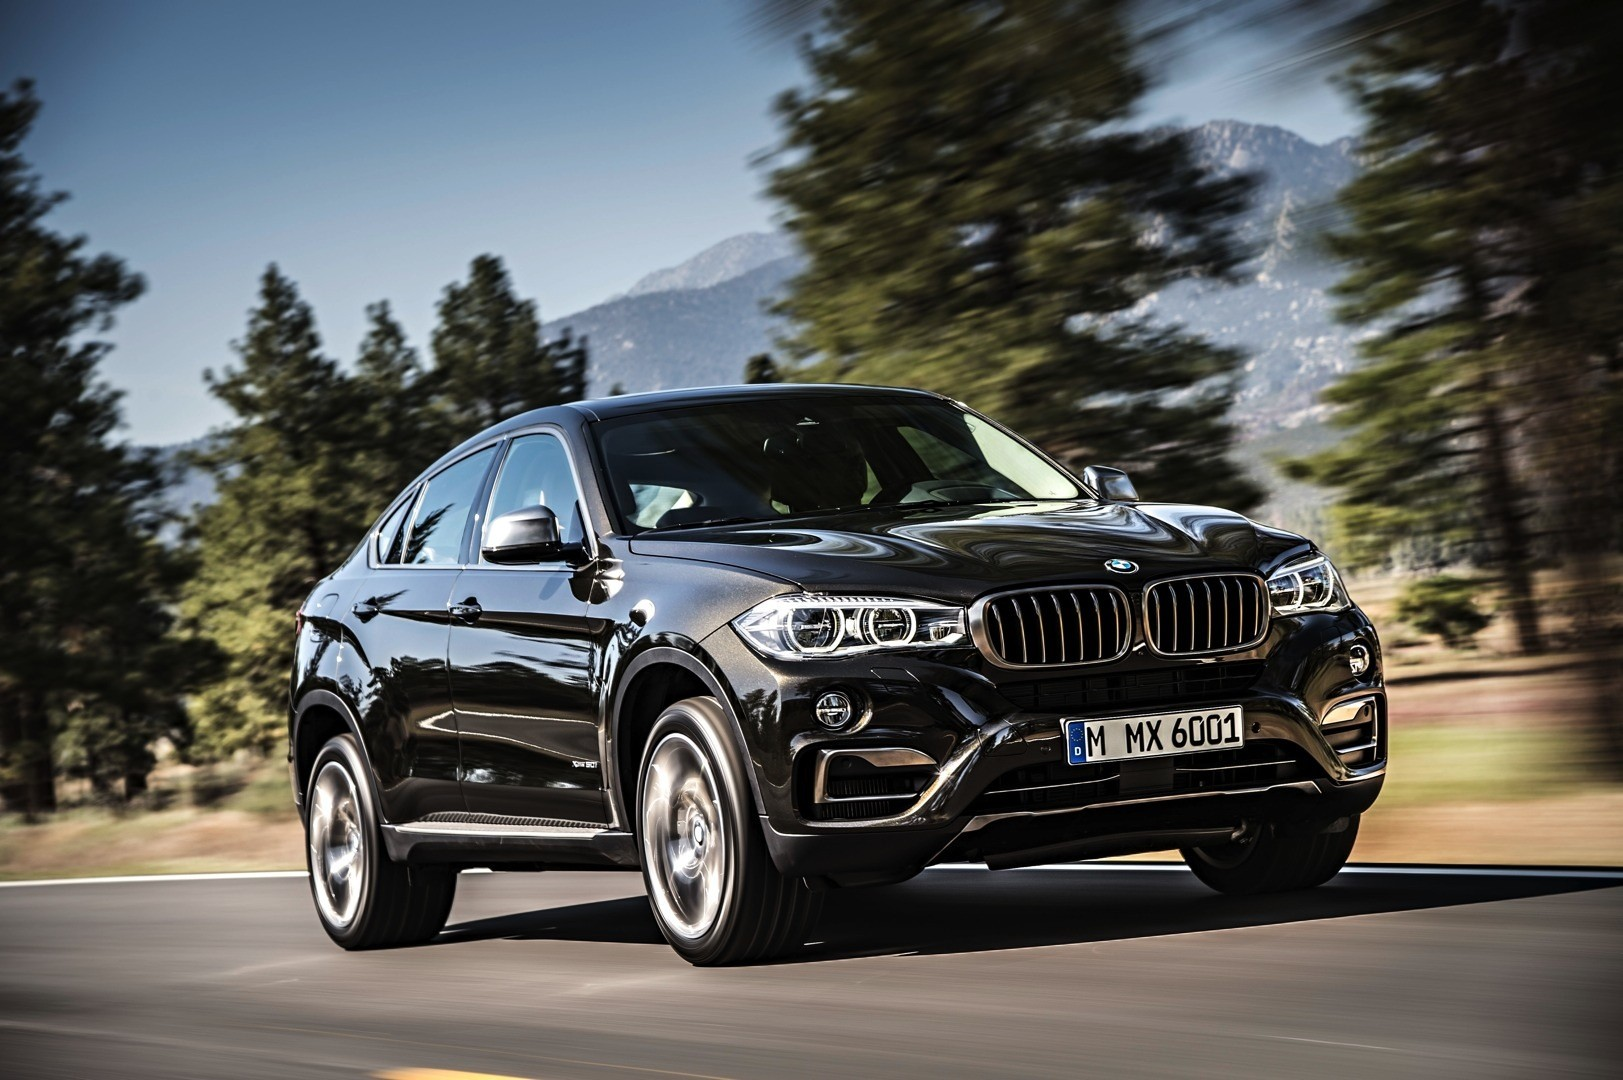 new car launches australia 20152015 BMW X6 Launched in Australia Starts at 115400  autoevolution